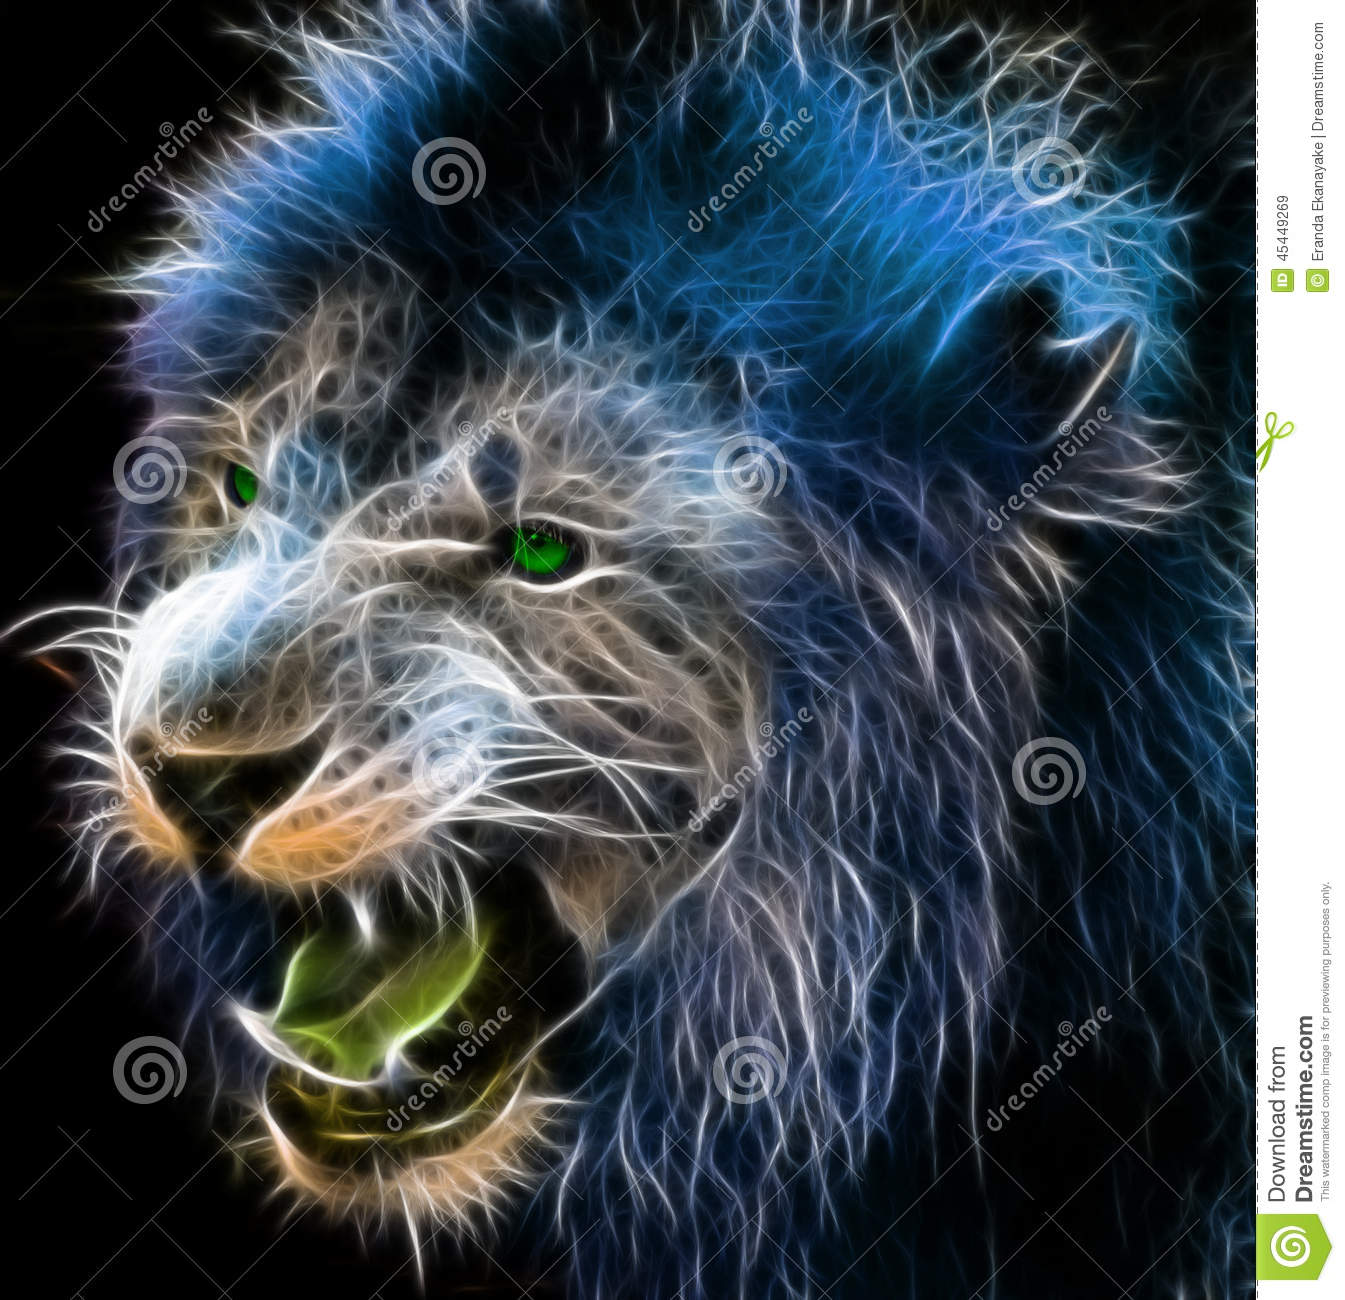 Wallpapers Yin Yang 3d Fantasy Art Of A Lion Stock Illustration Image Of Intuos